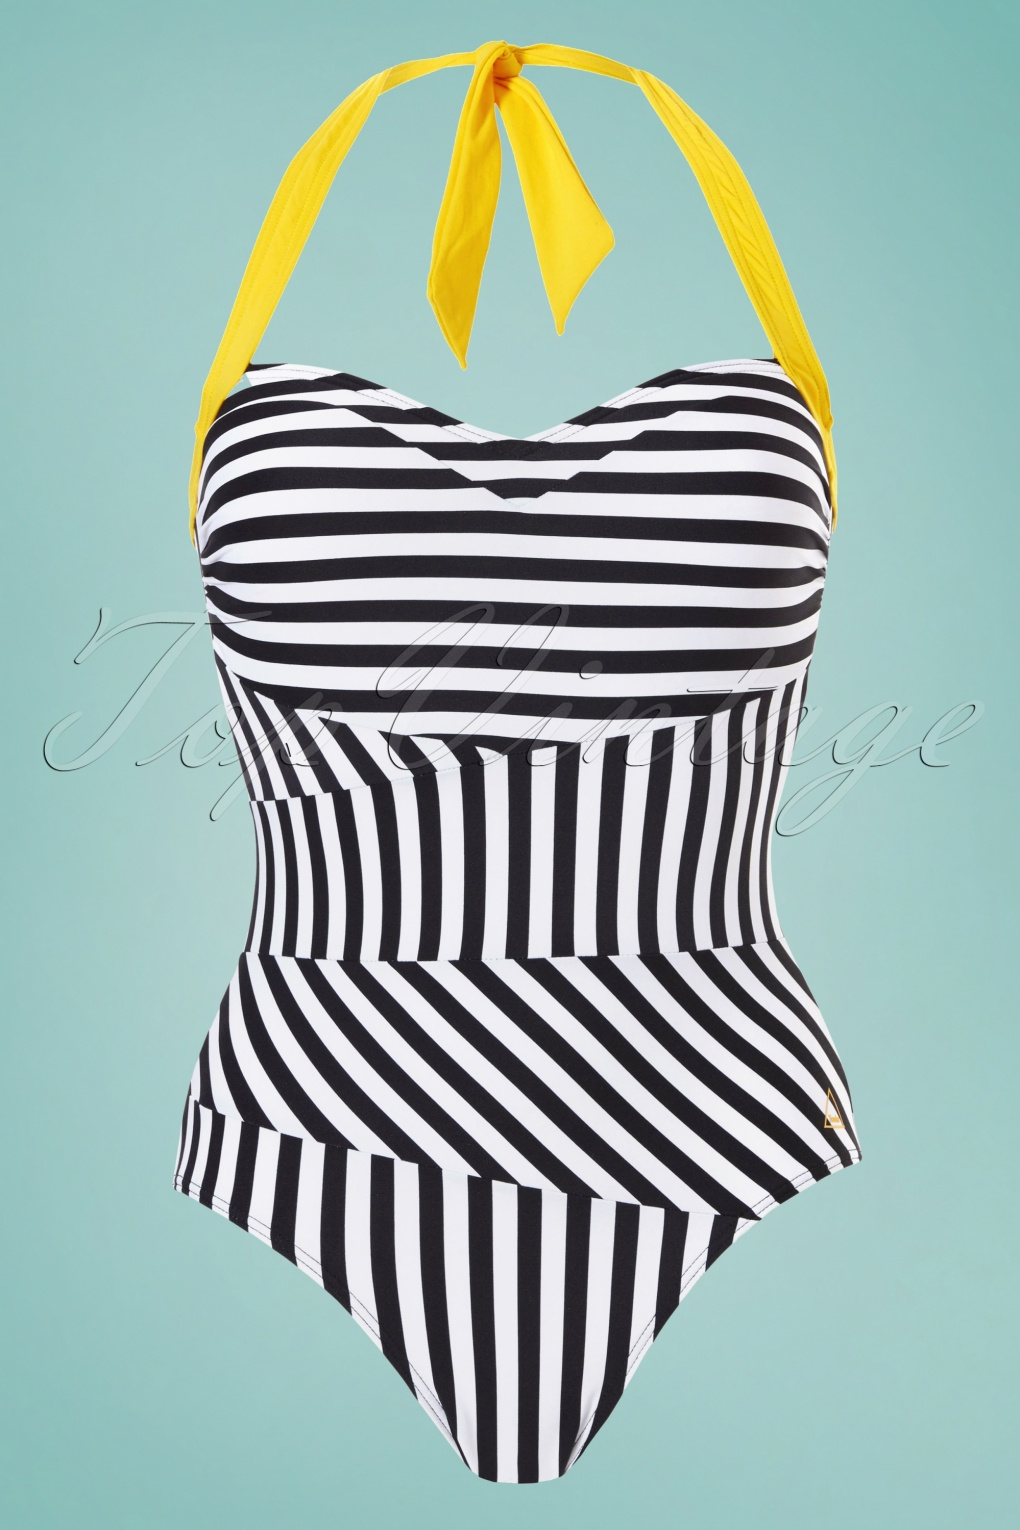 Vintage Bathing Suits | Retro Swimwear | Vintage Swimsuits 60s Beach Graphic Swimsuit in Black and White £79.11 AT vintagedancer.com